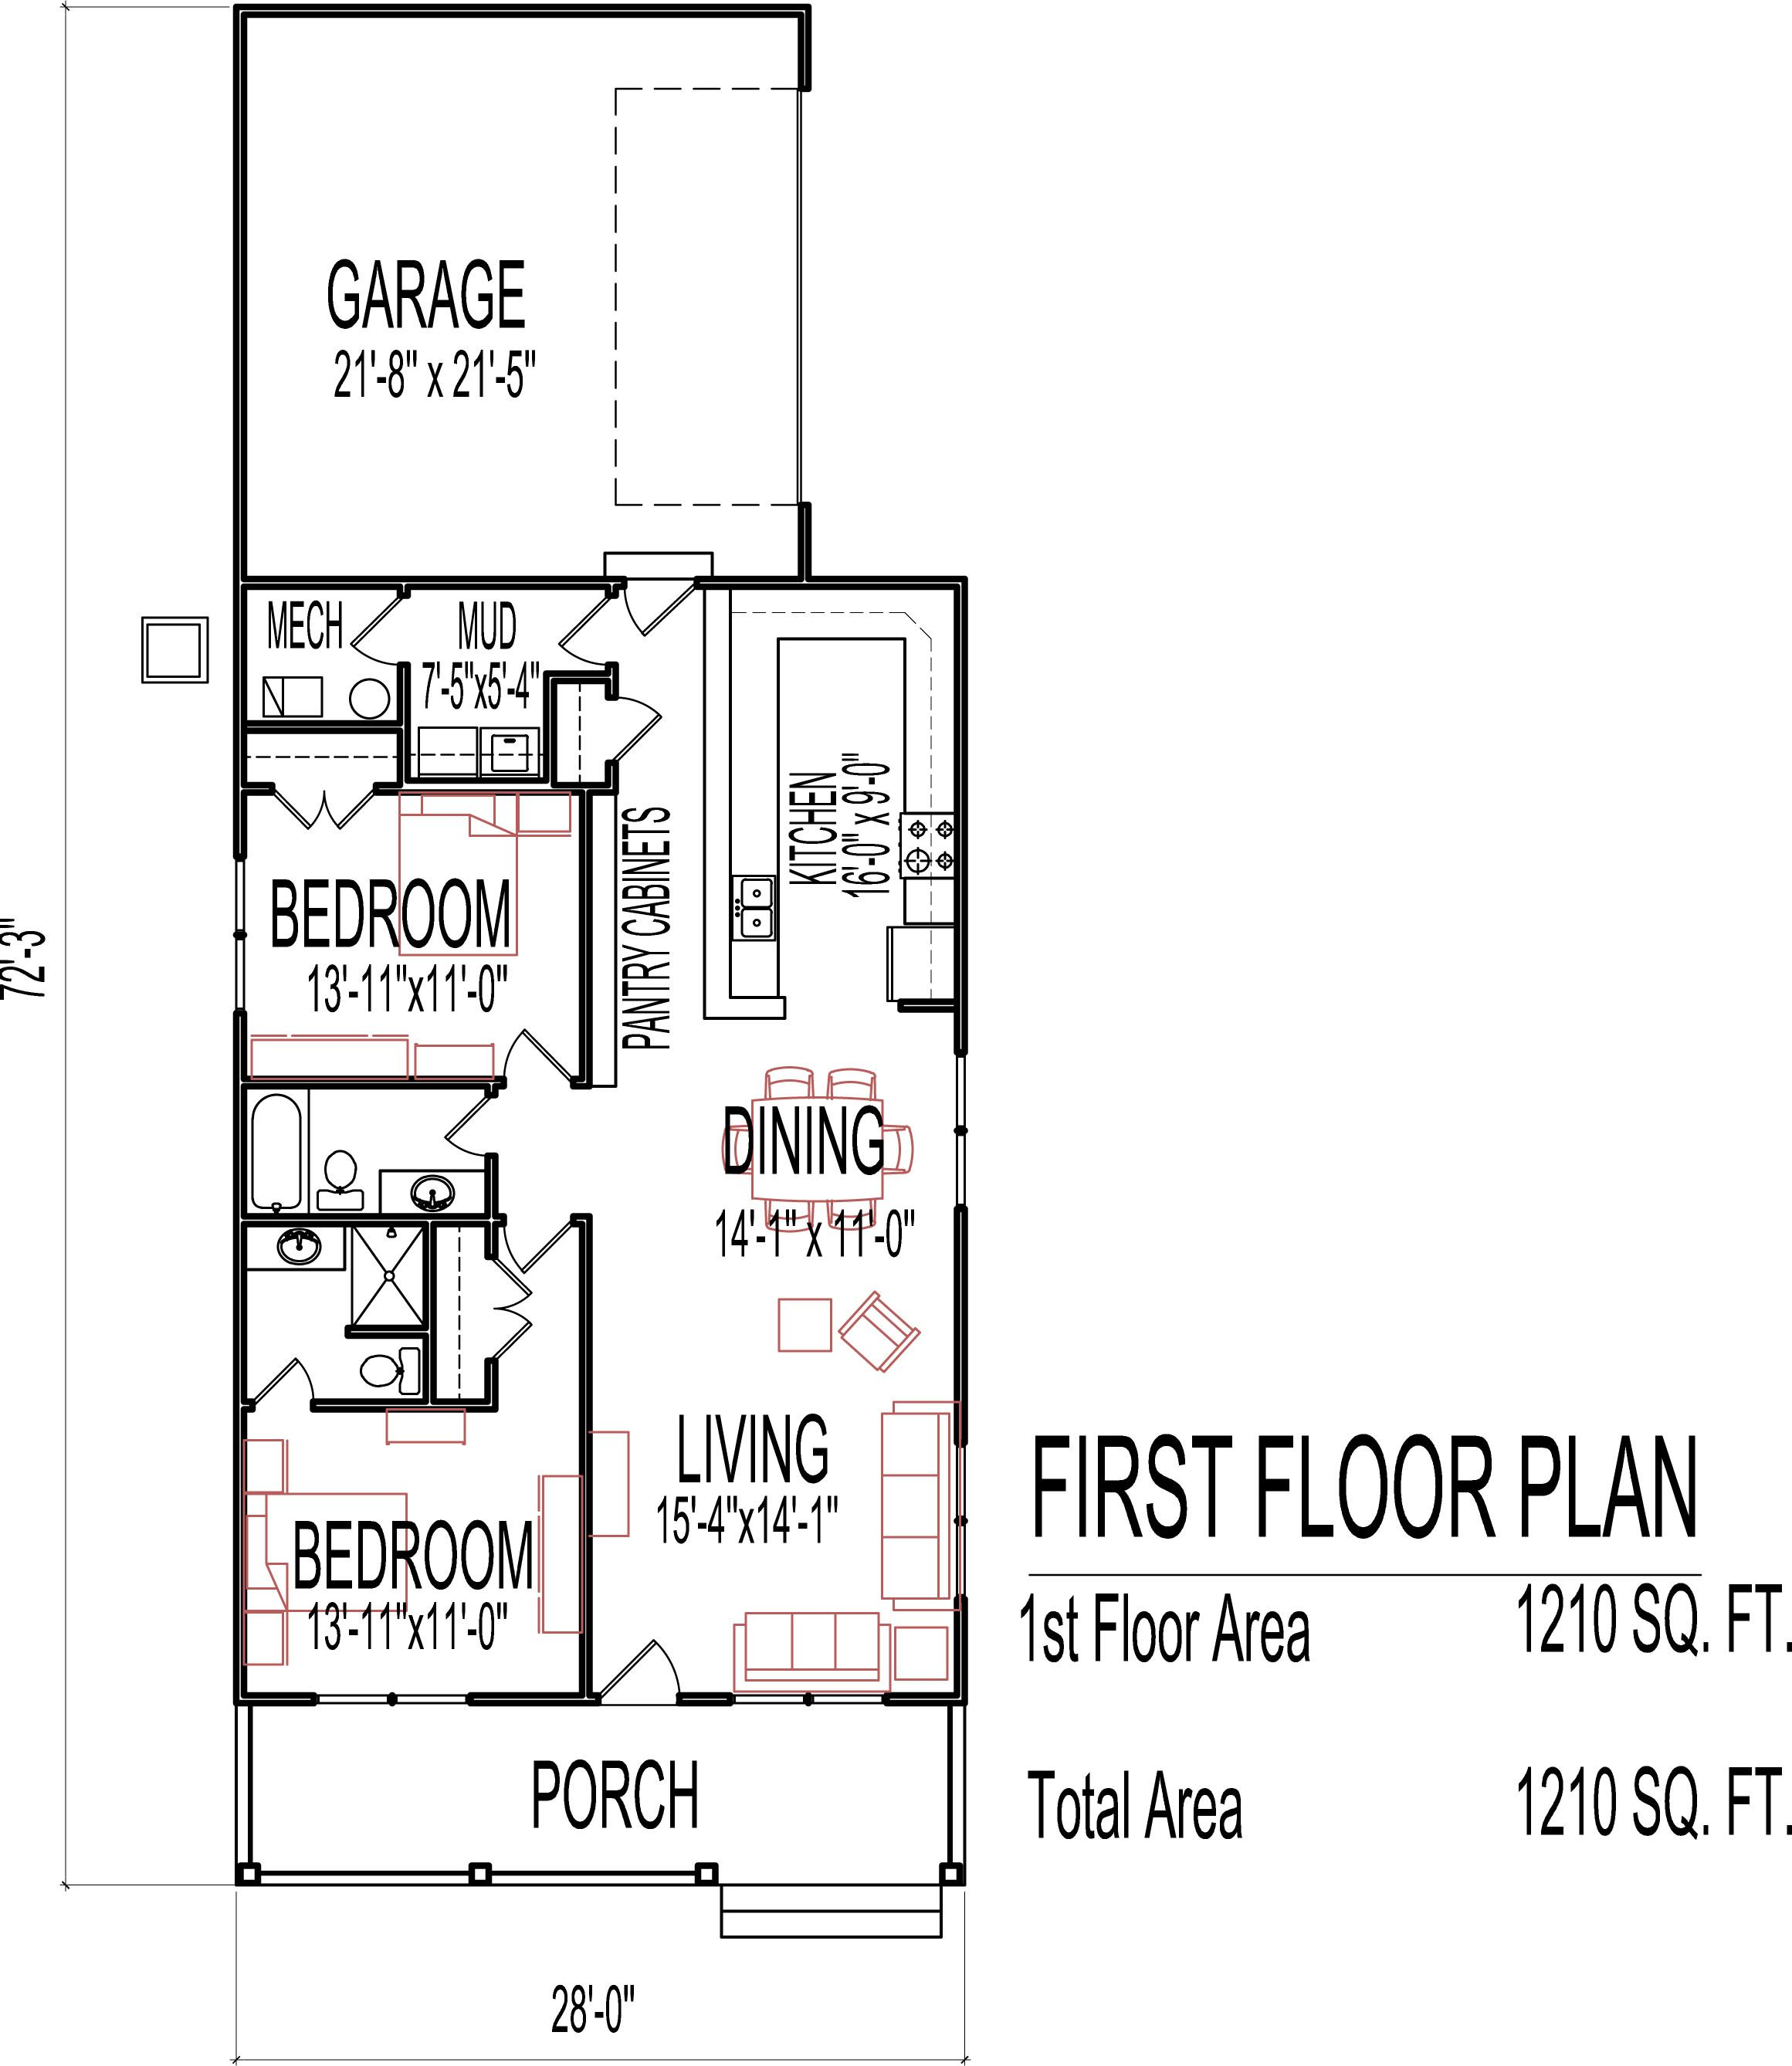 Small low cost economical 2 bedroom 2 bath 1200 sq ft for 2 bedroom 2 bath home plans